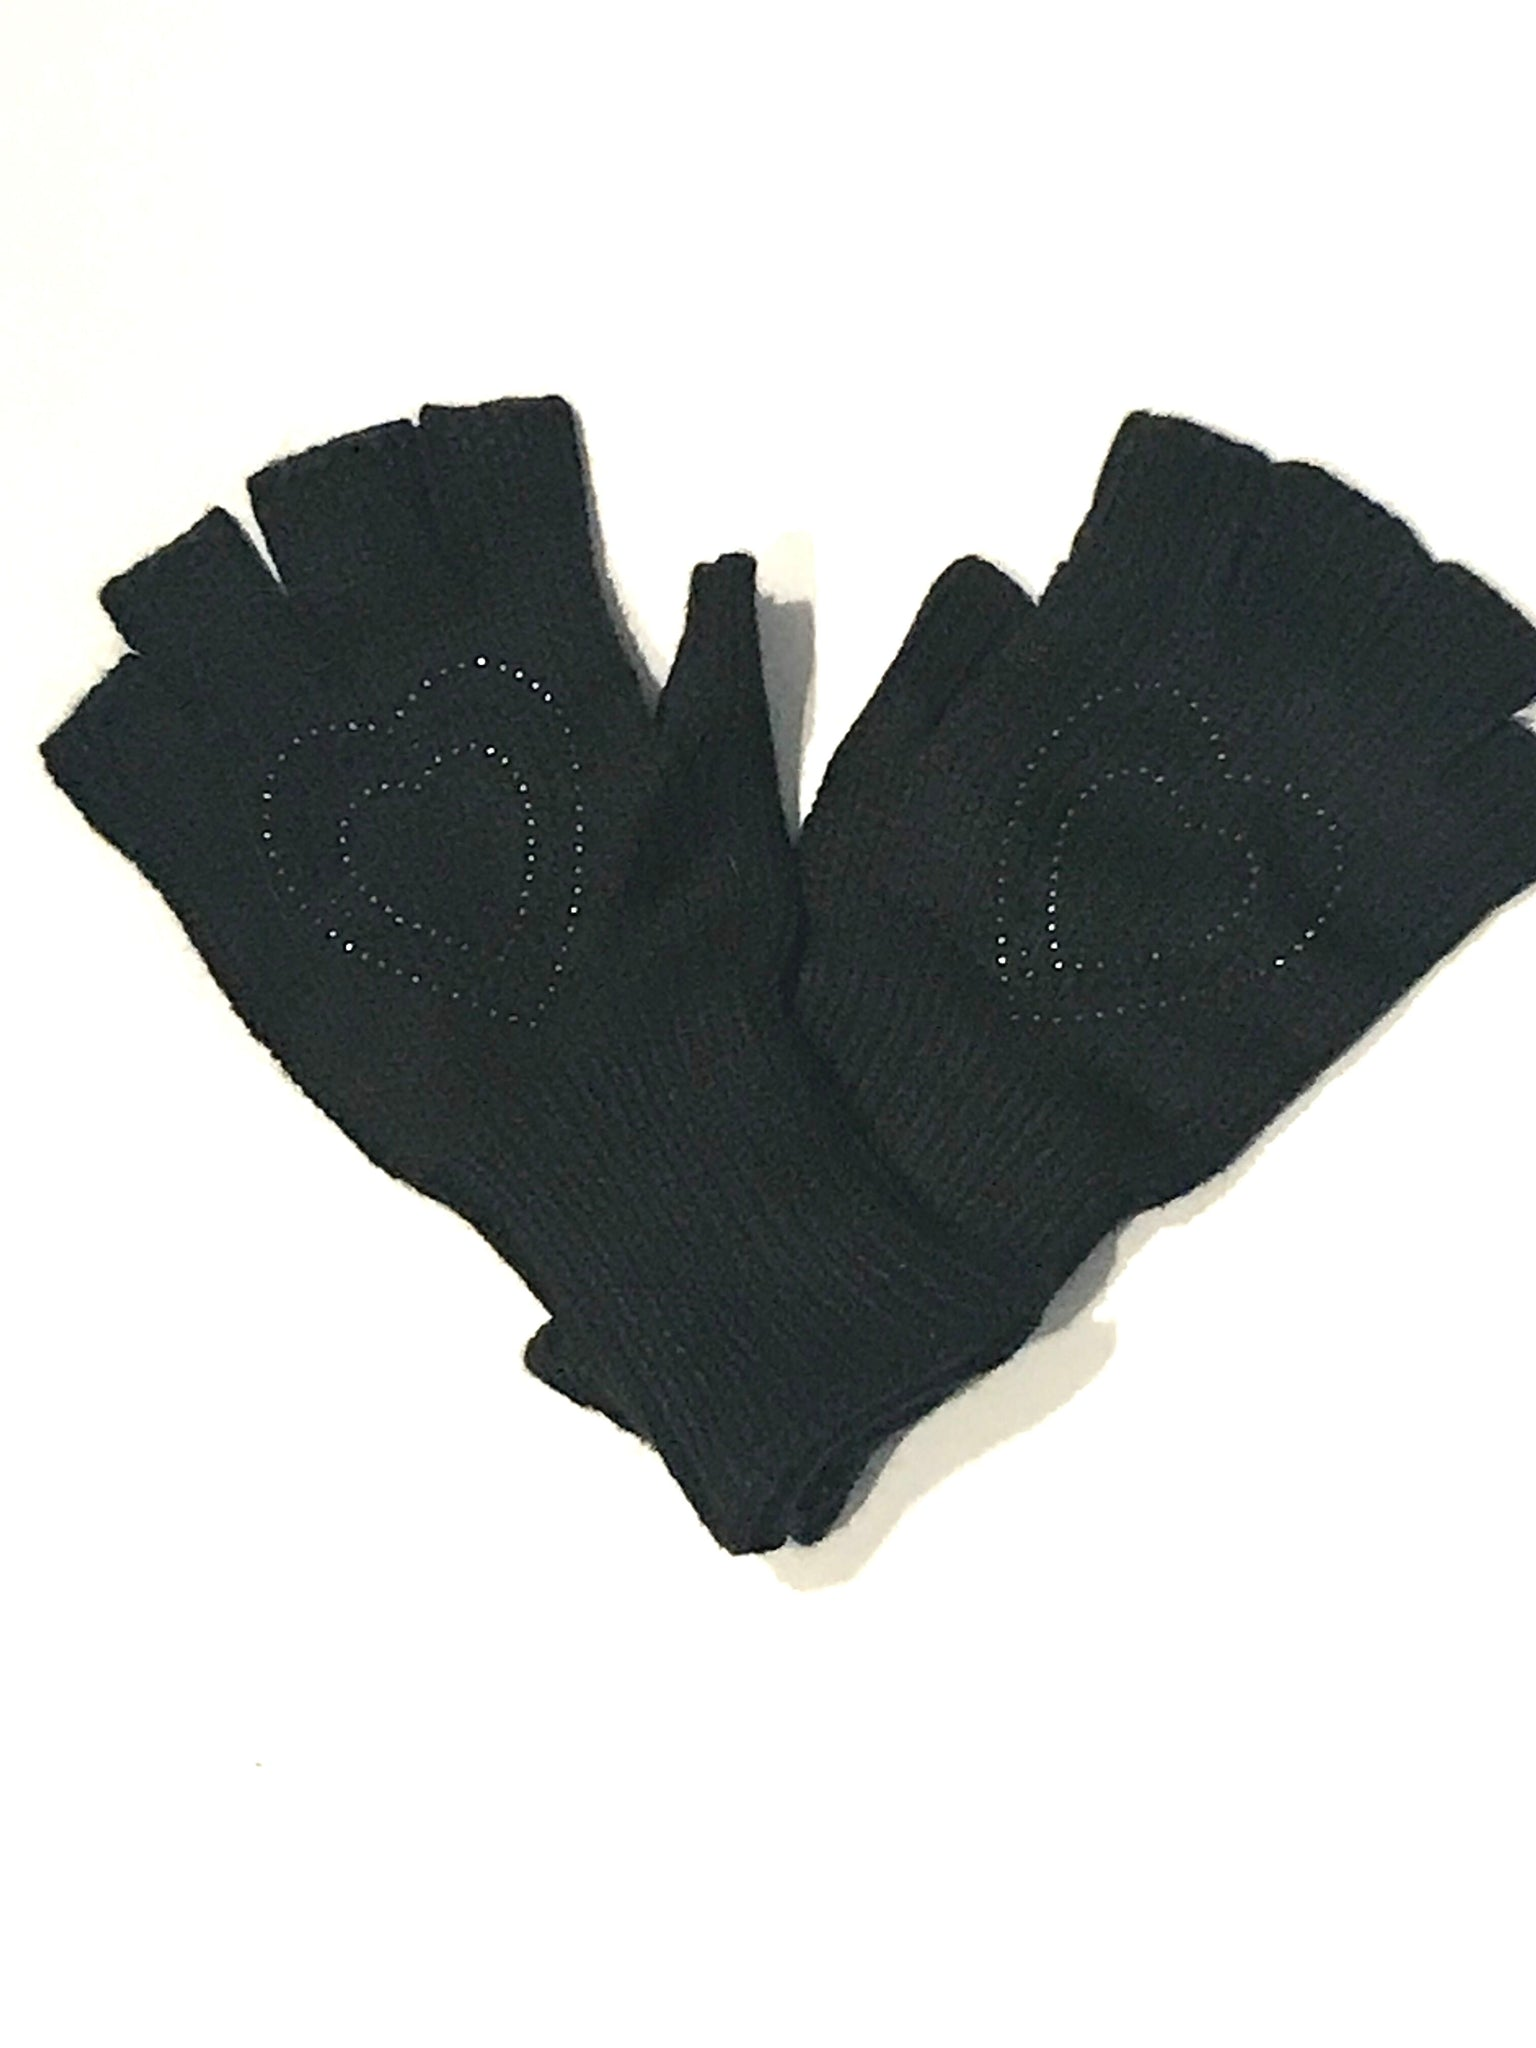 Paris Fingerless Glove